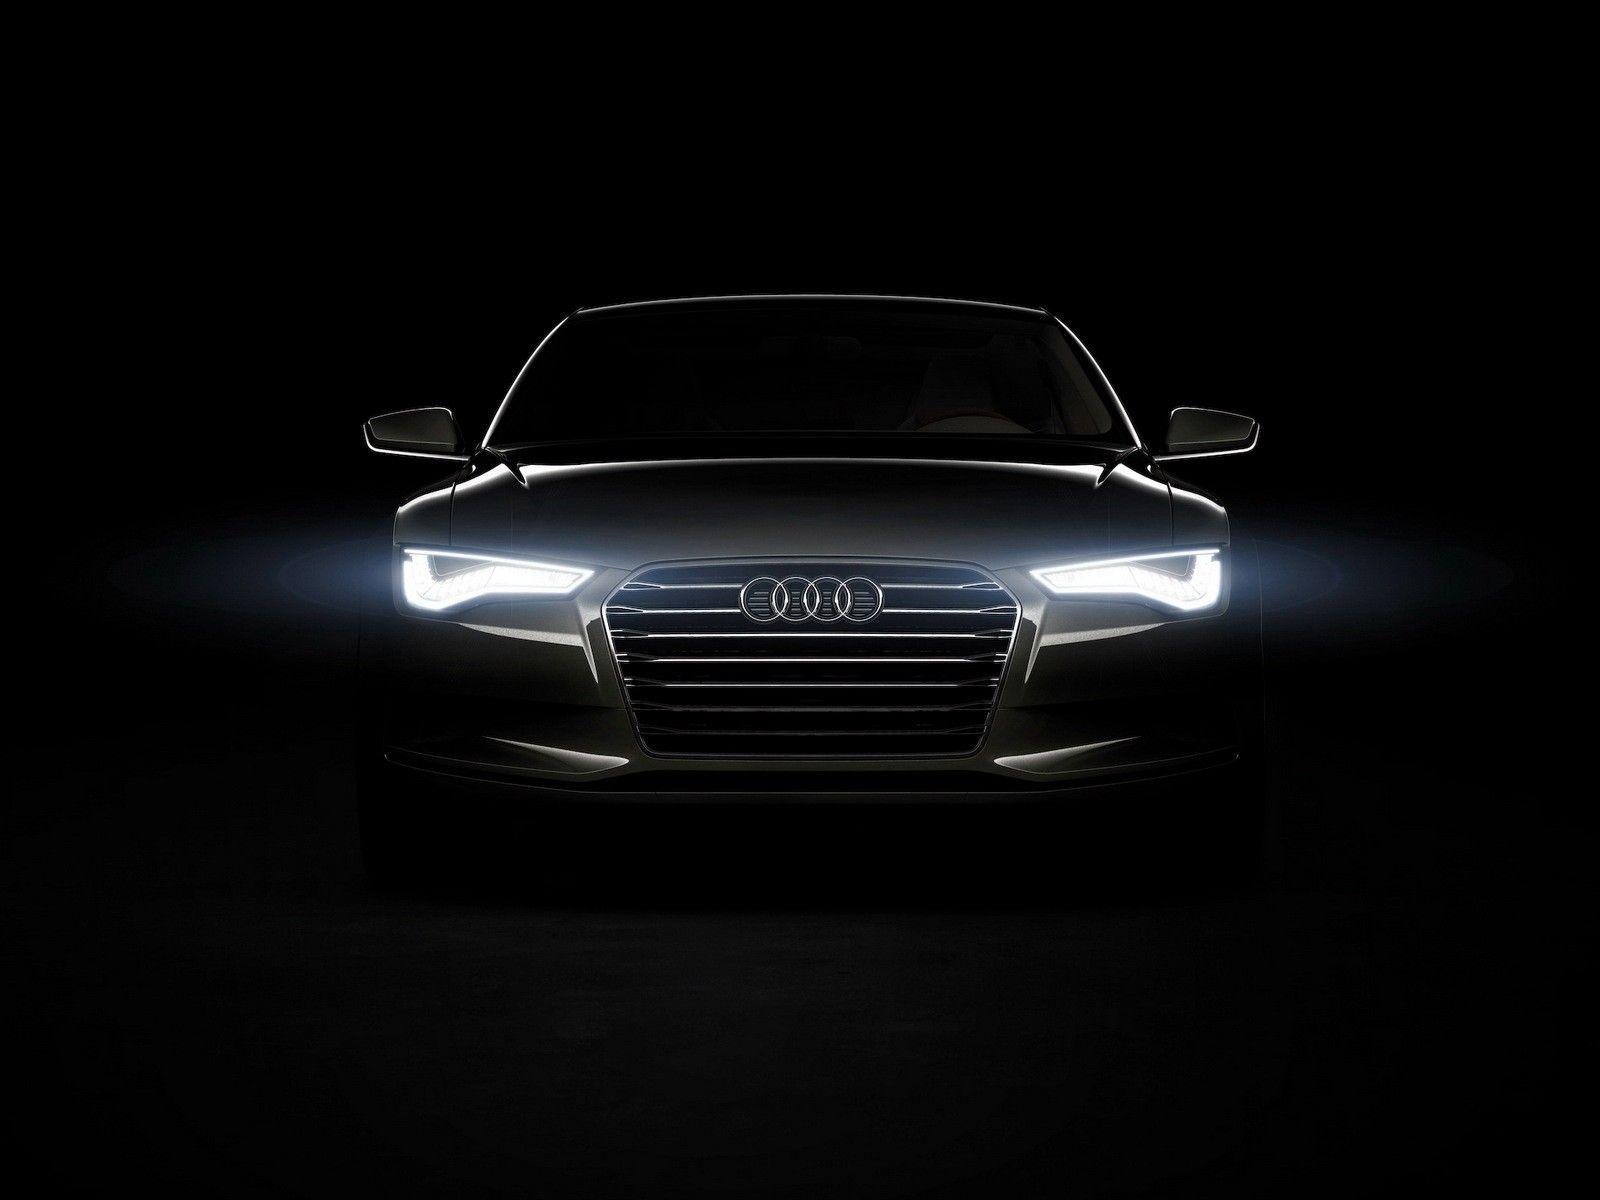 Audi Wallpapers | HD Wallpapers Pulse